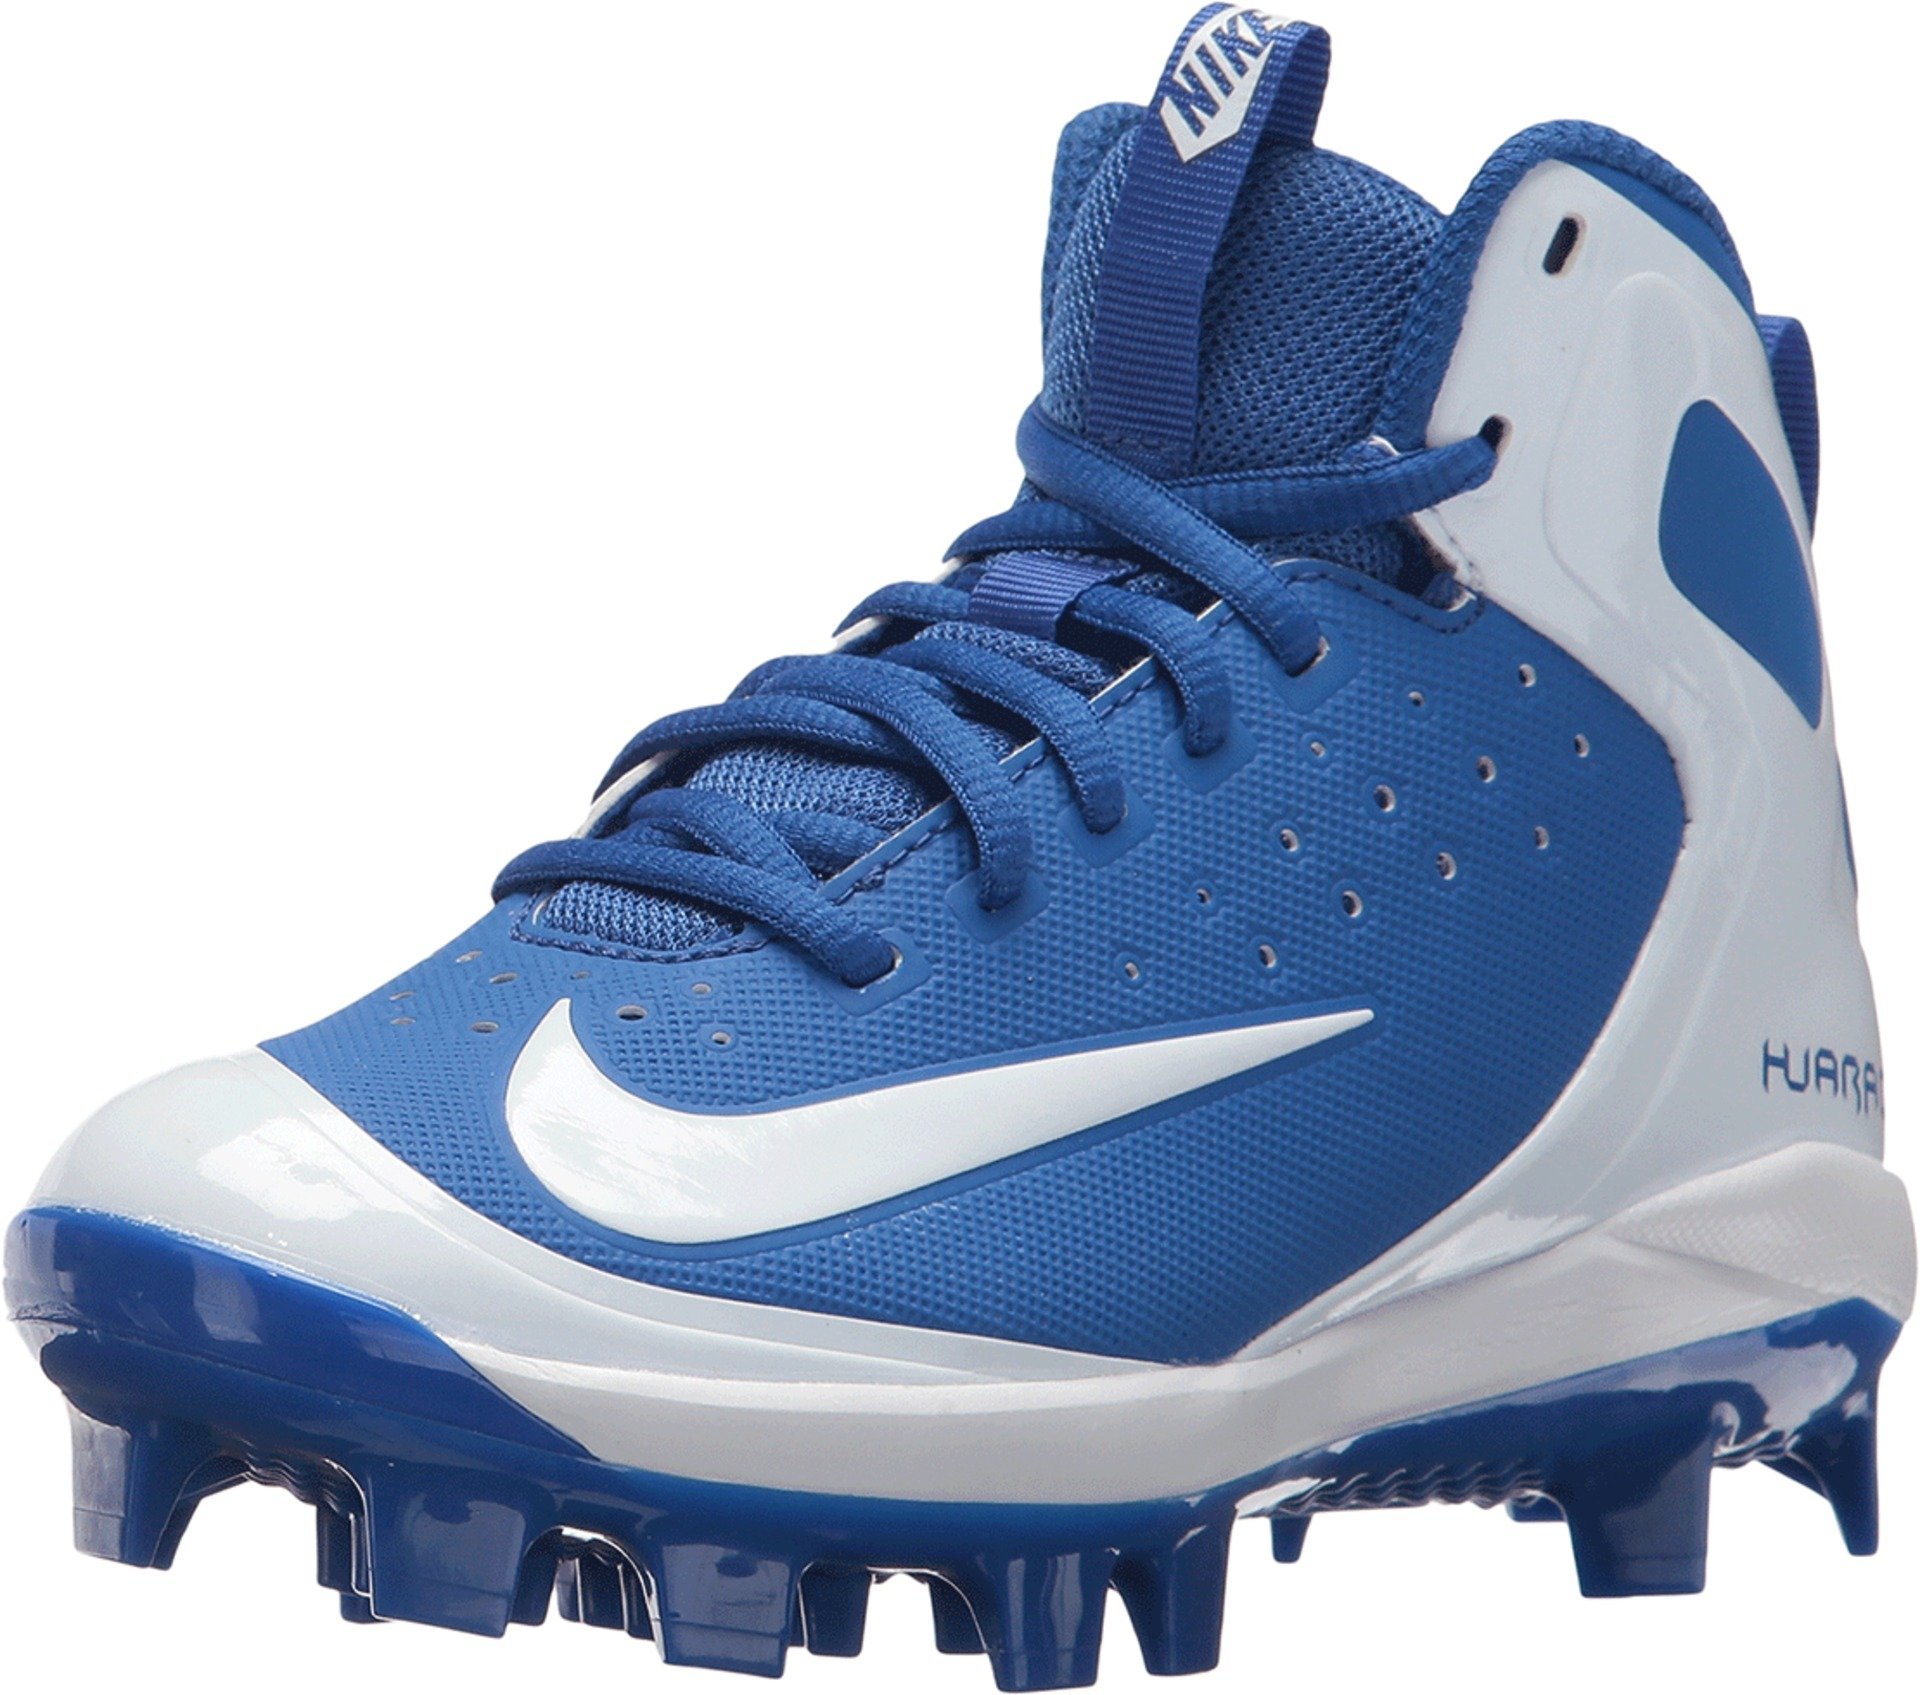 Nike Kids' Alpha Huarache Pro Mid Baseball Cleats (4.5 M US, Game Royal/White/Photo Blue) by Nike